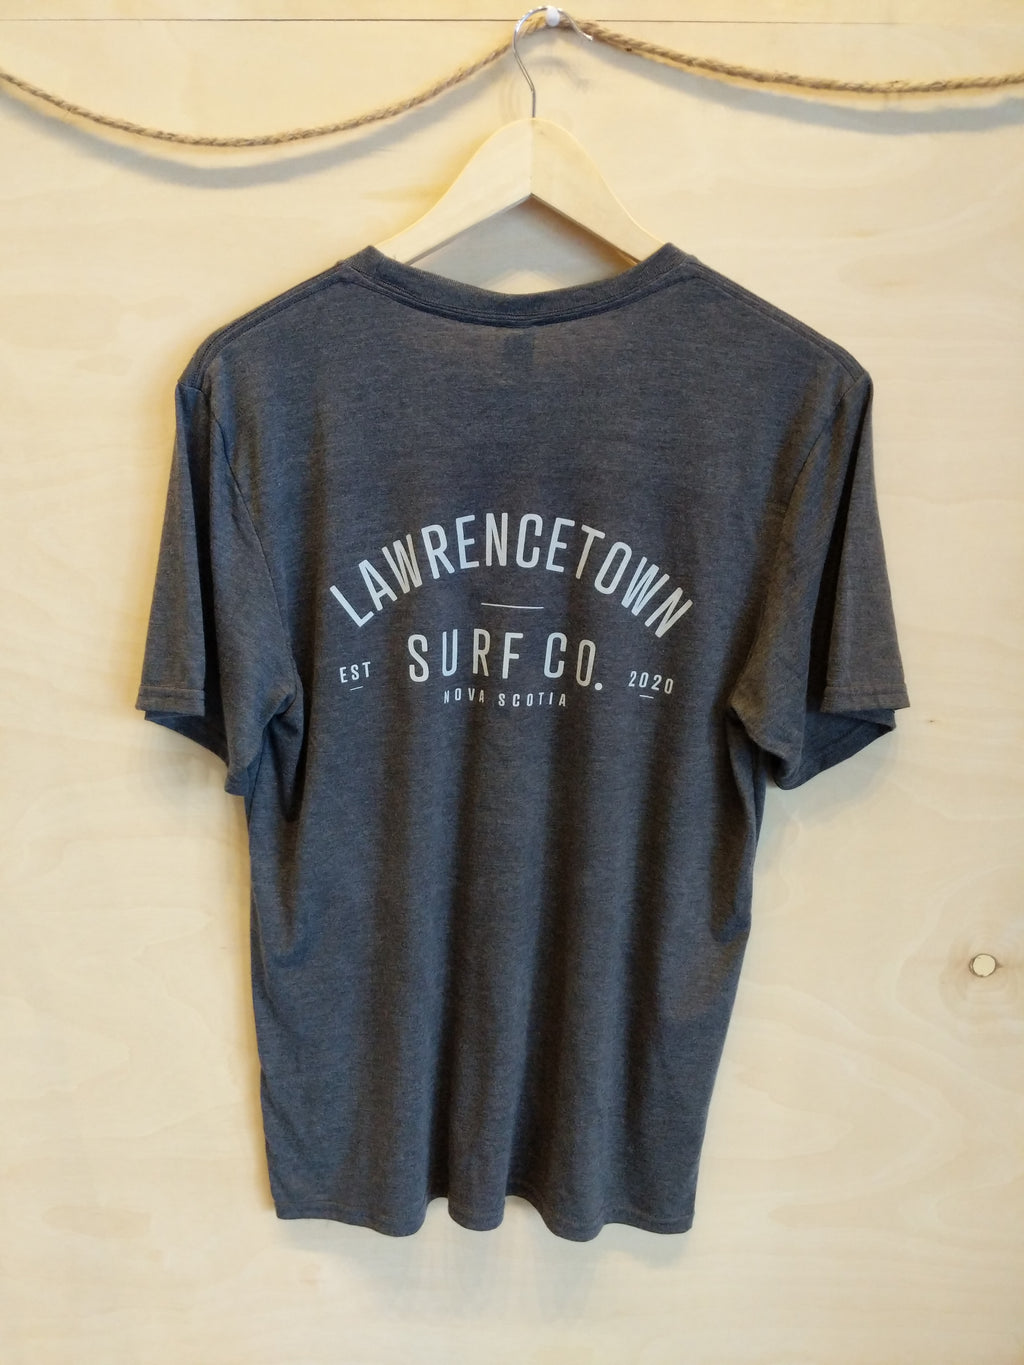 Lawrencetown Surf Co. Adult Tee - Grey / White